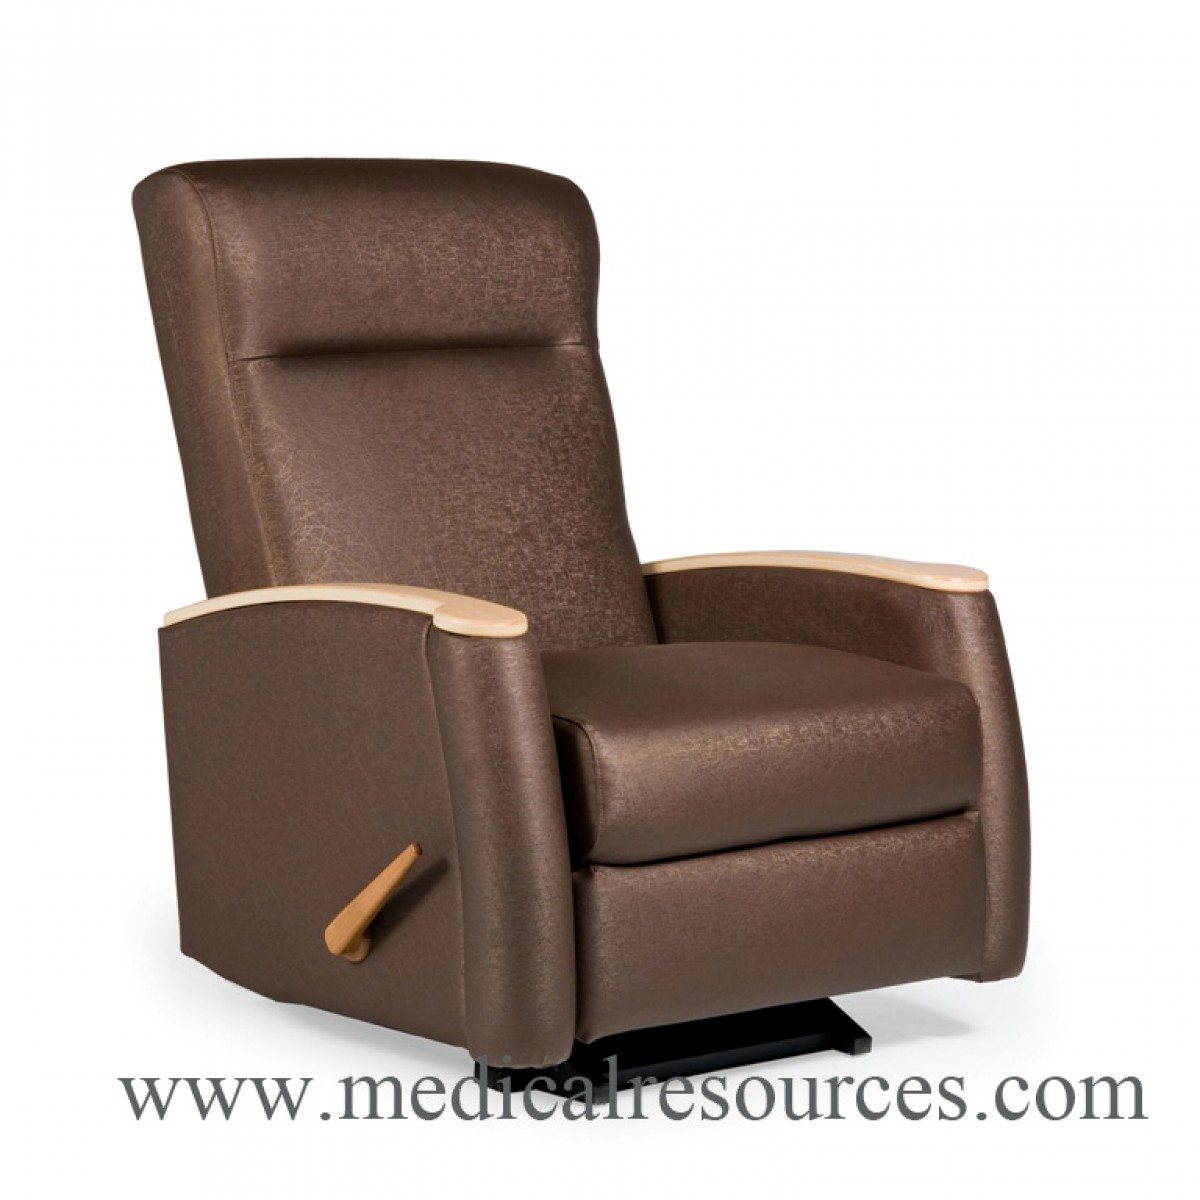 powell chairs furniture leather scully seating bliss loungers at utter recliners recliner power lg